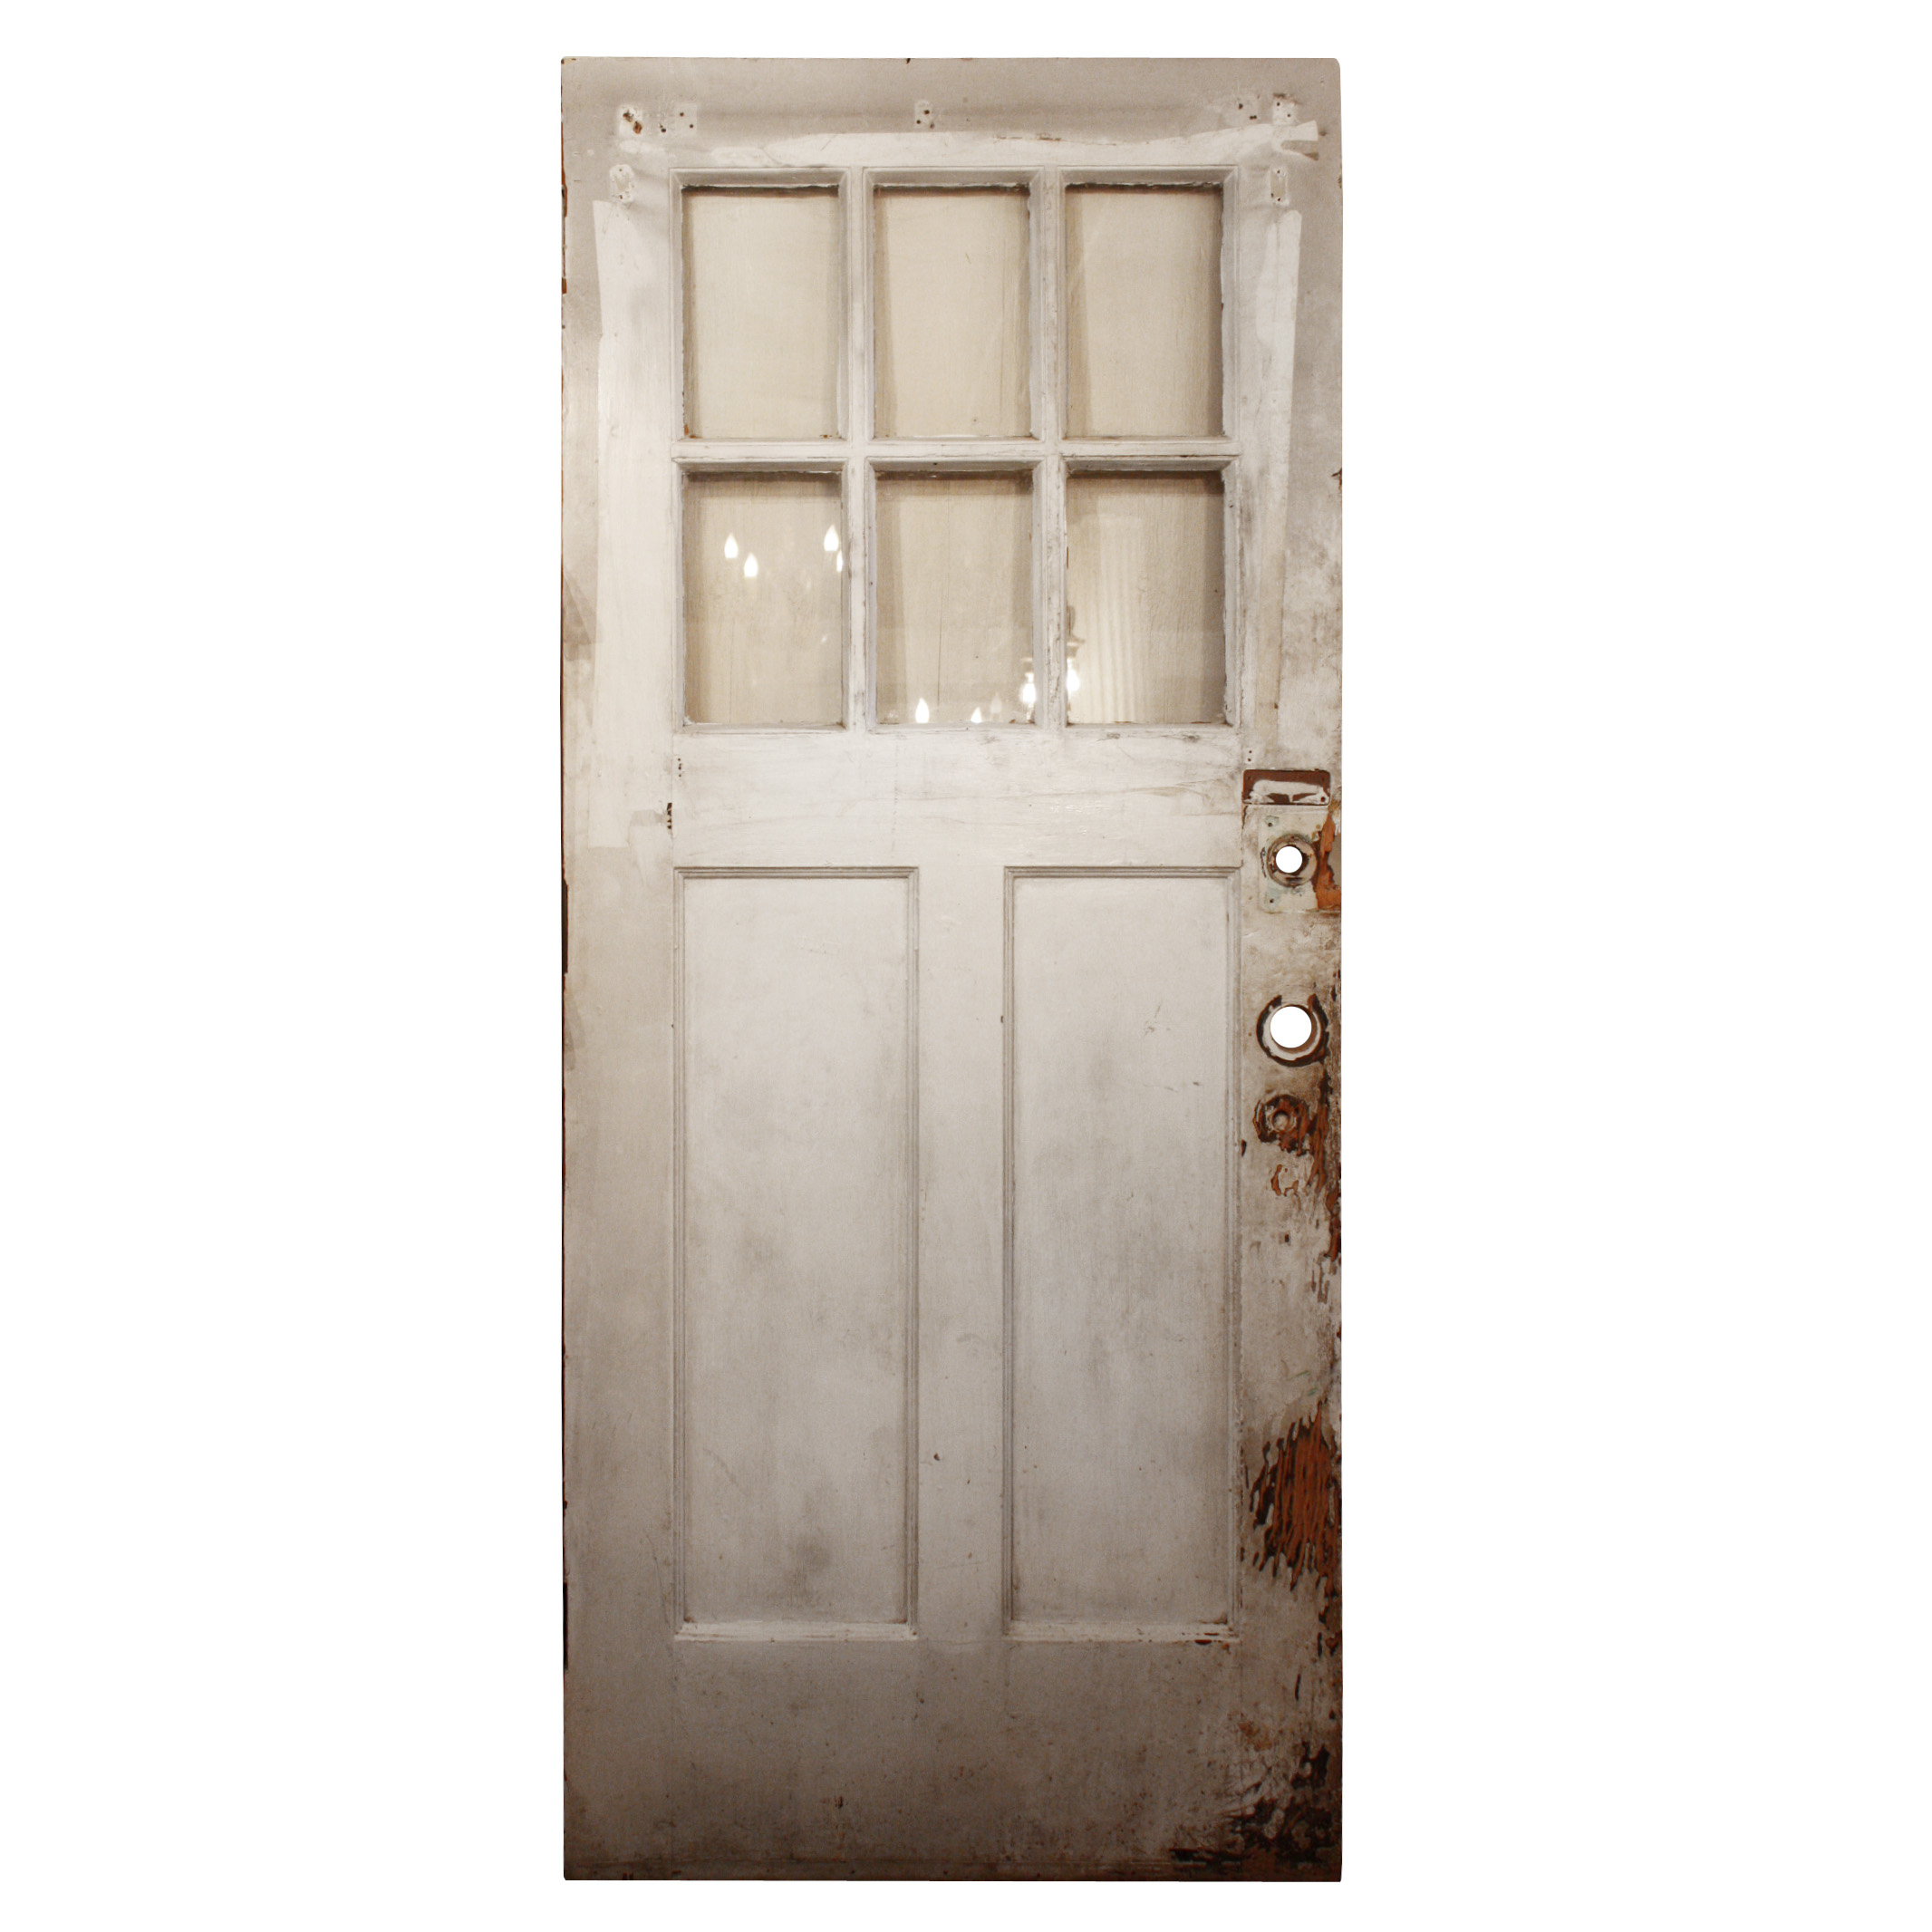 A fantastic Arts and Crafts entry door  dating from the early 1900 s and  salvaged from a home in Nashville  The window features six panes of glass  at the  Salvaged Arts   Crafts 36 Exterior Door with Dentil Molding NED240  . Exterior Dentil Molding Sale. Home Design Ideas